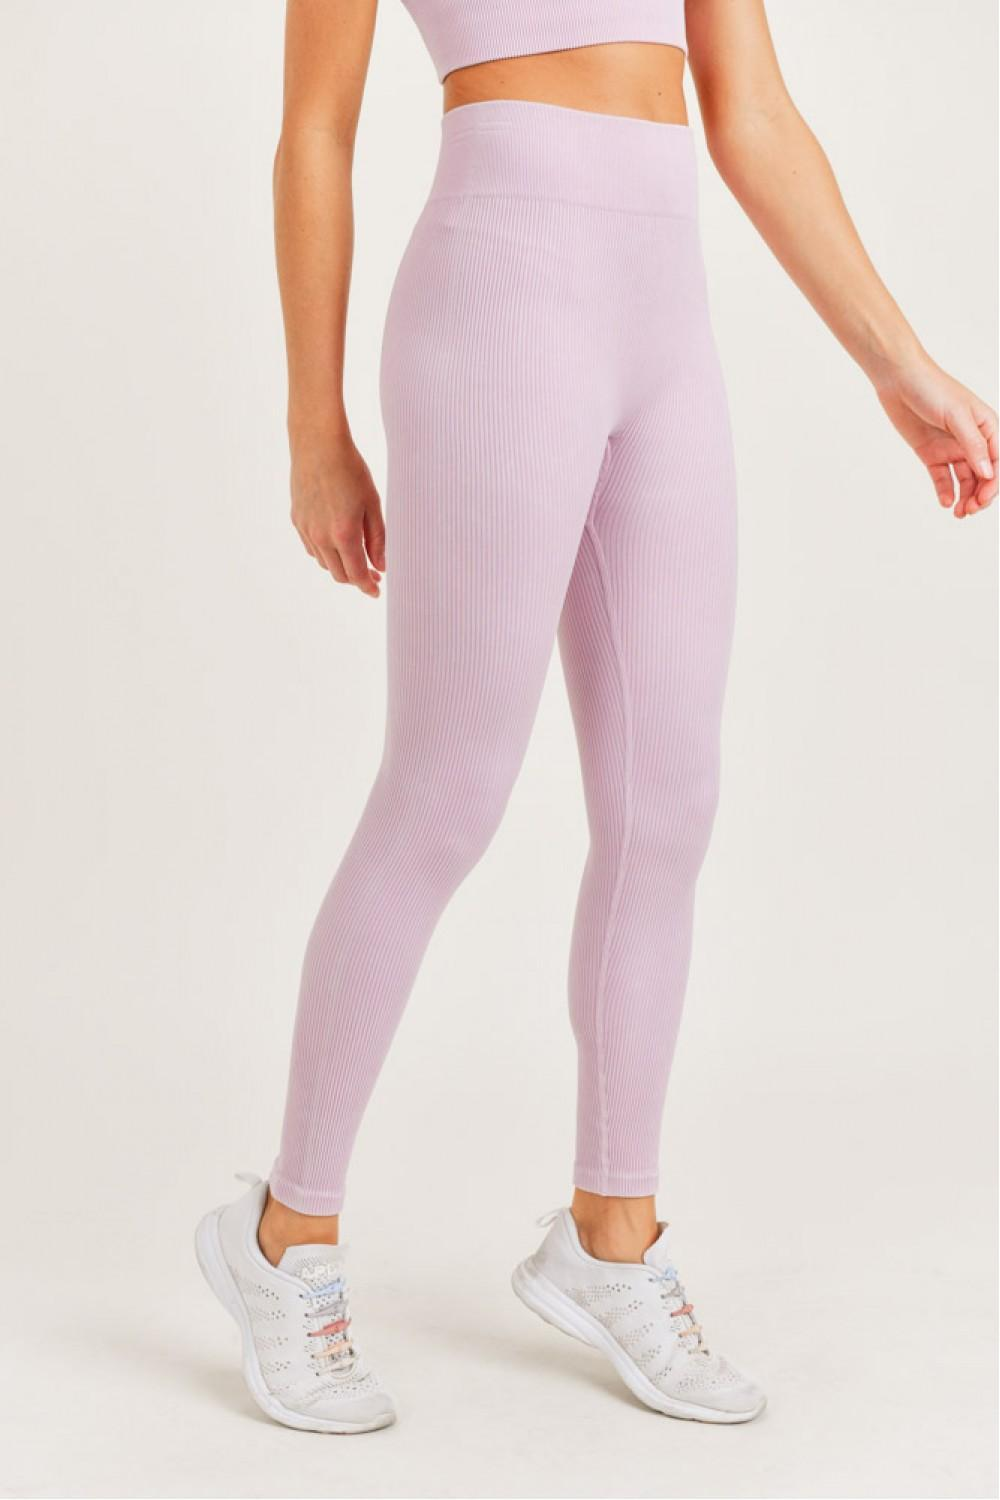 Ribbed Essential High Rise Leggings - 13 Hub Lane   |